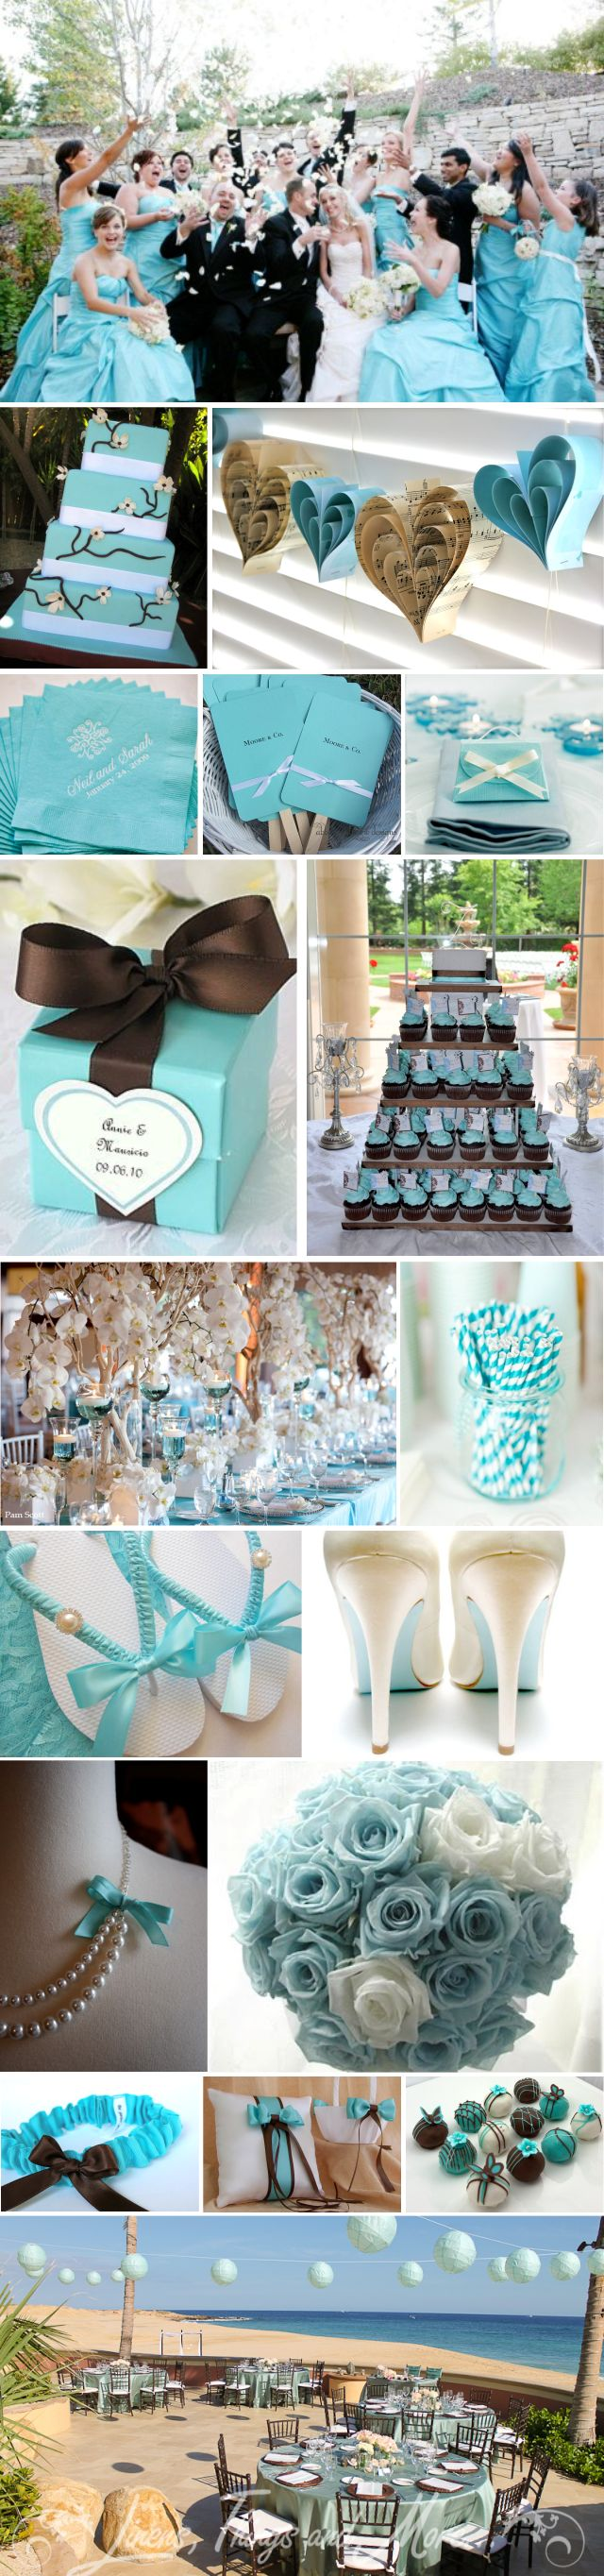 Aqua/Brown wedding inspiration